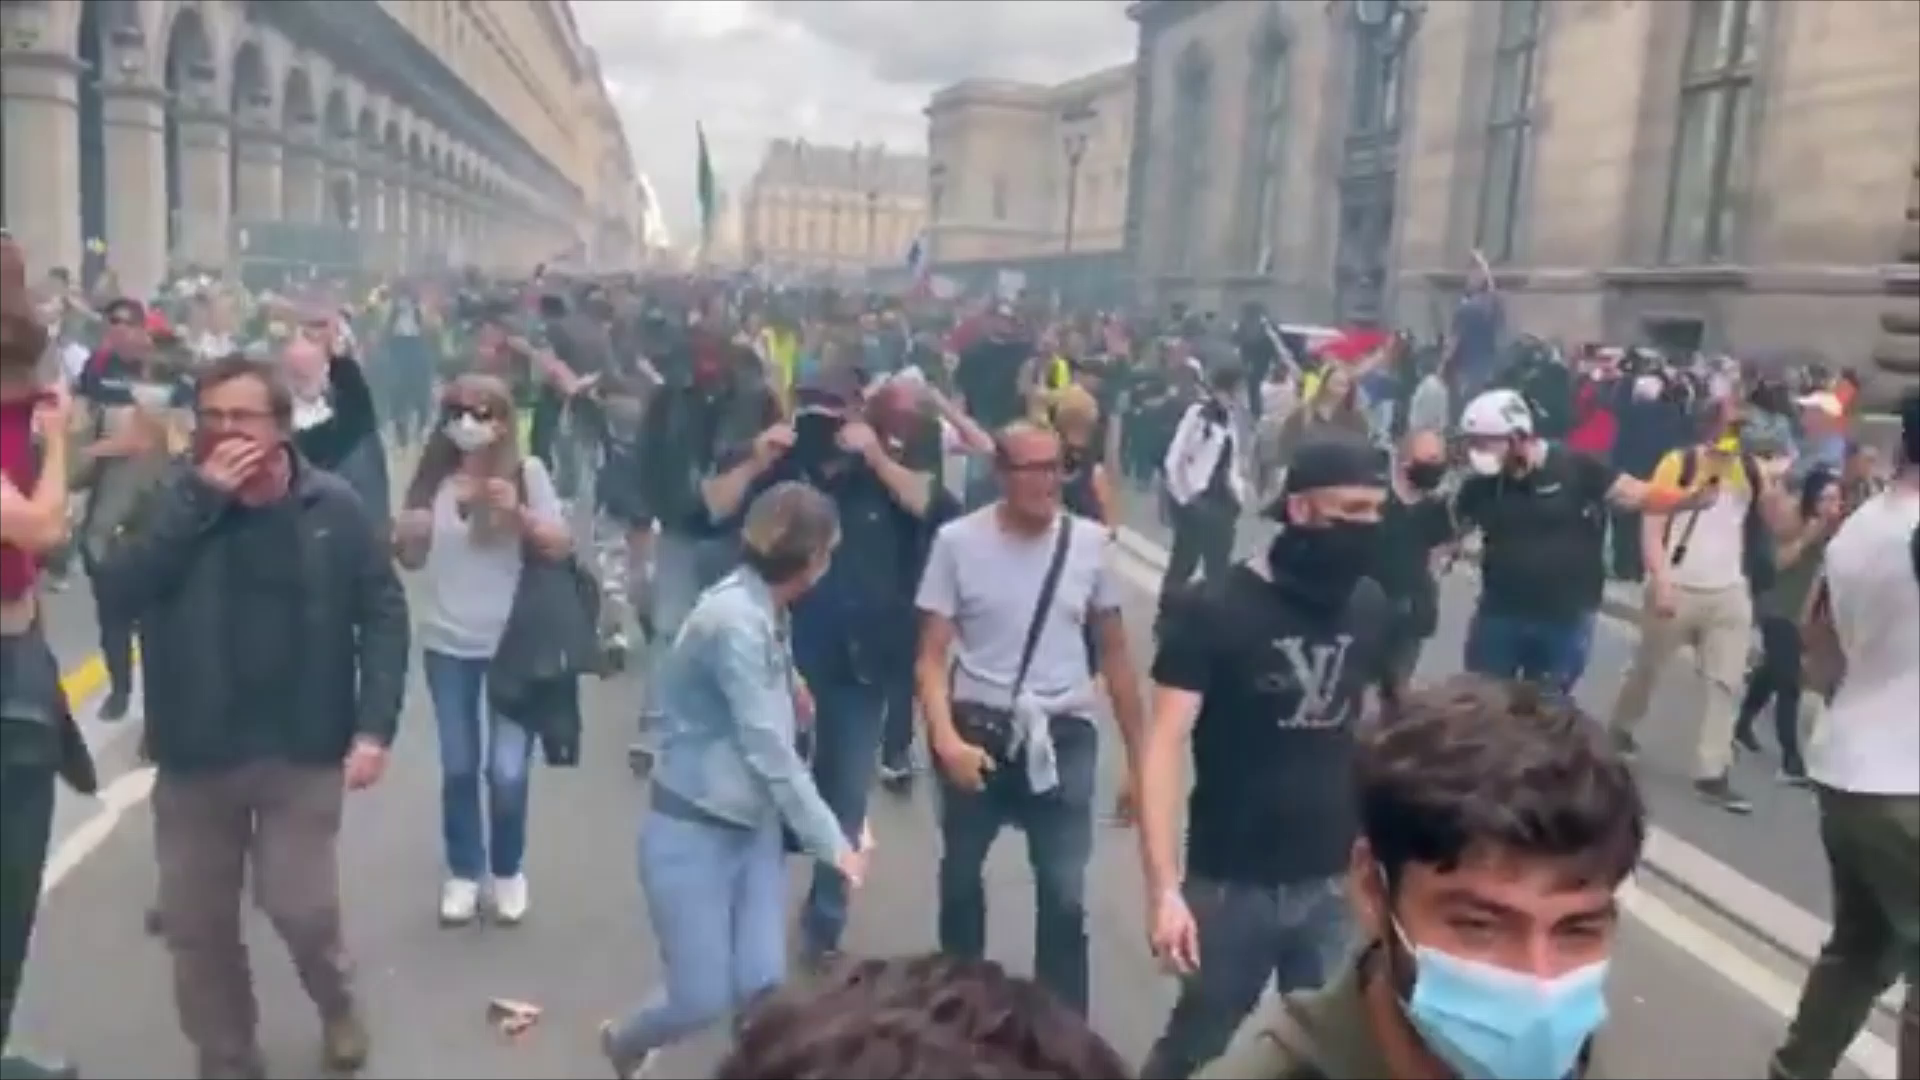 Tensions getting high between protesters and the police in Paris, France